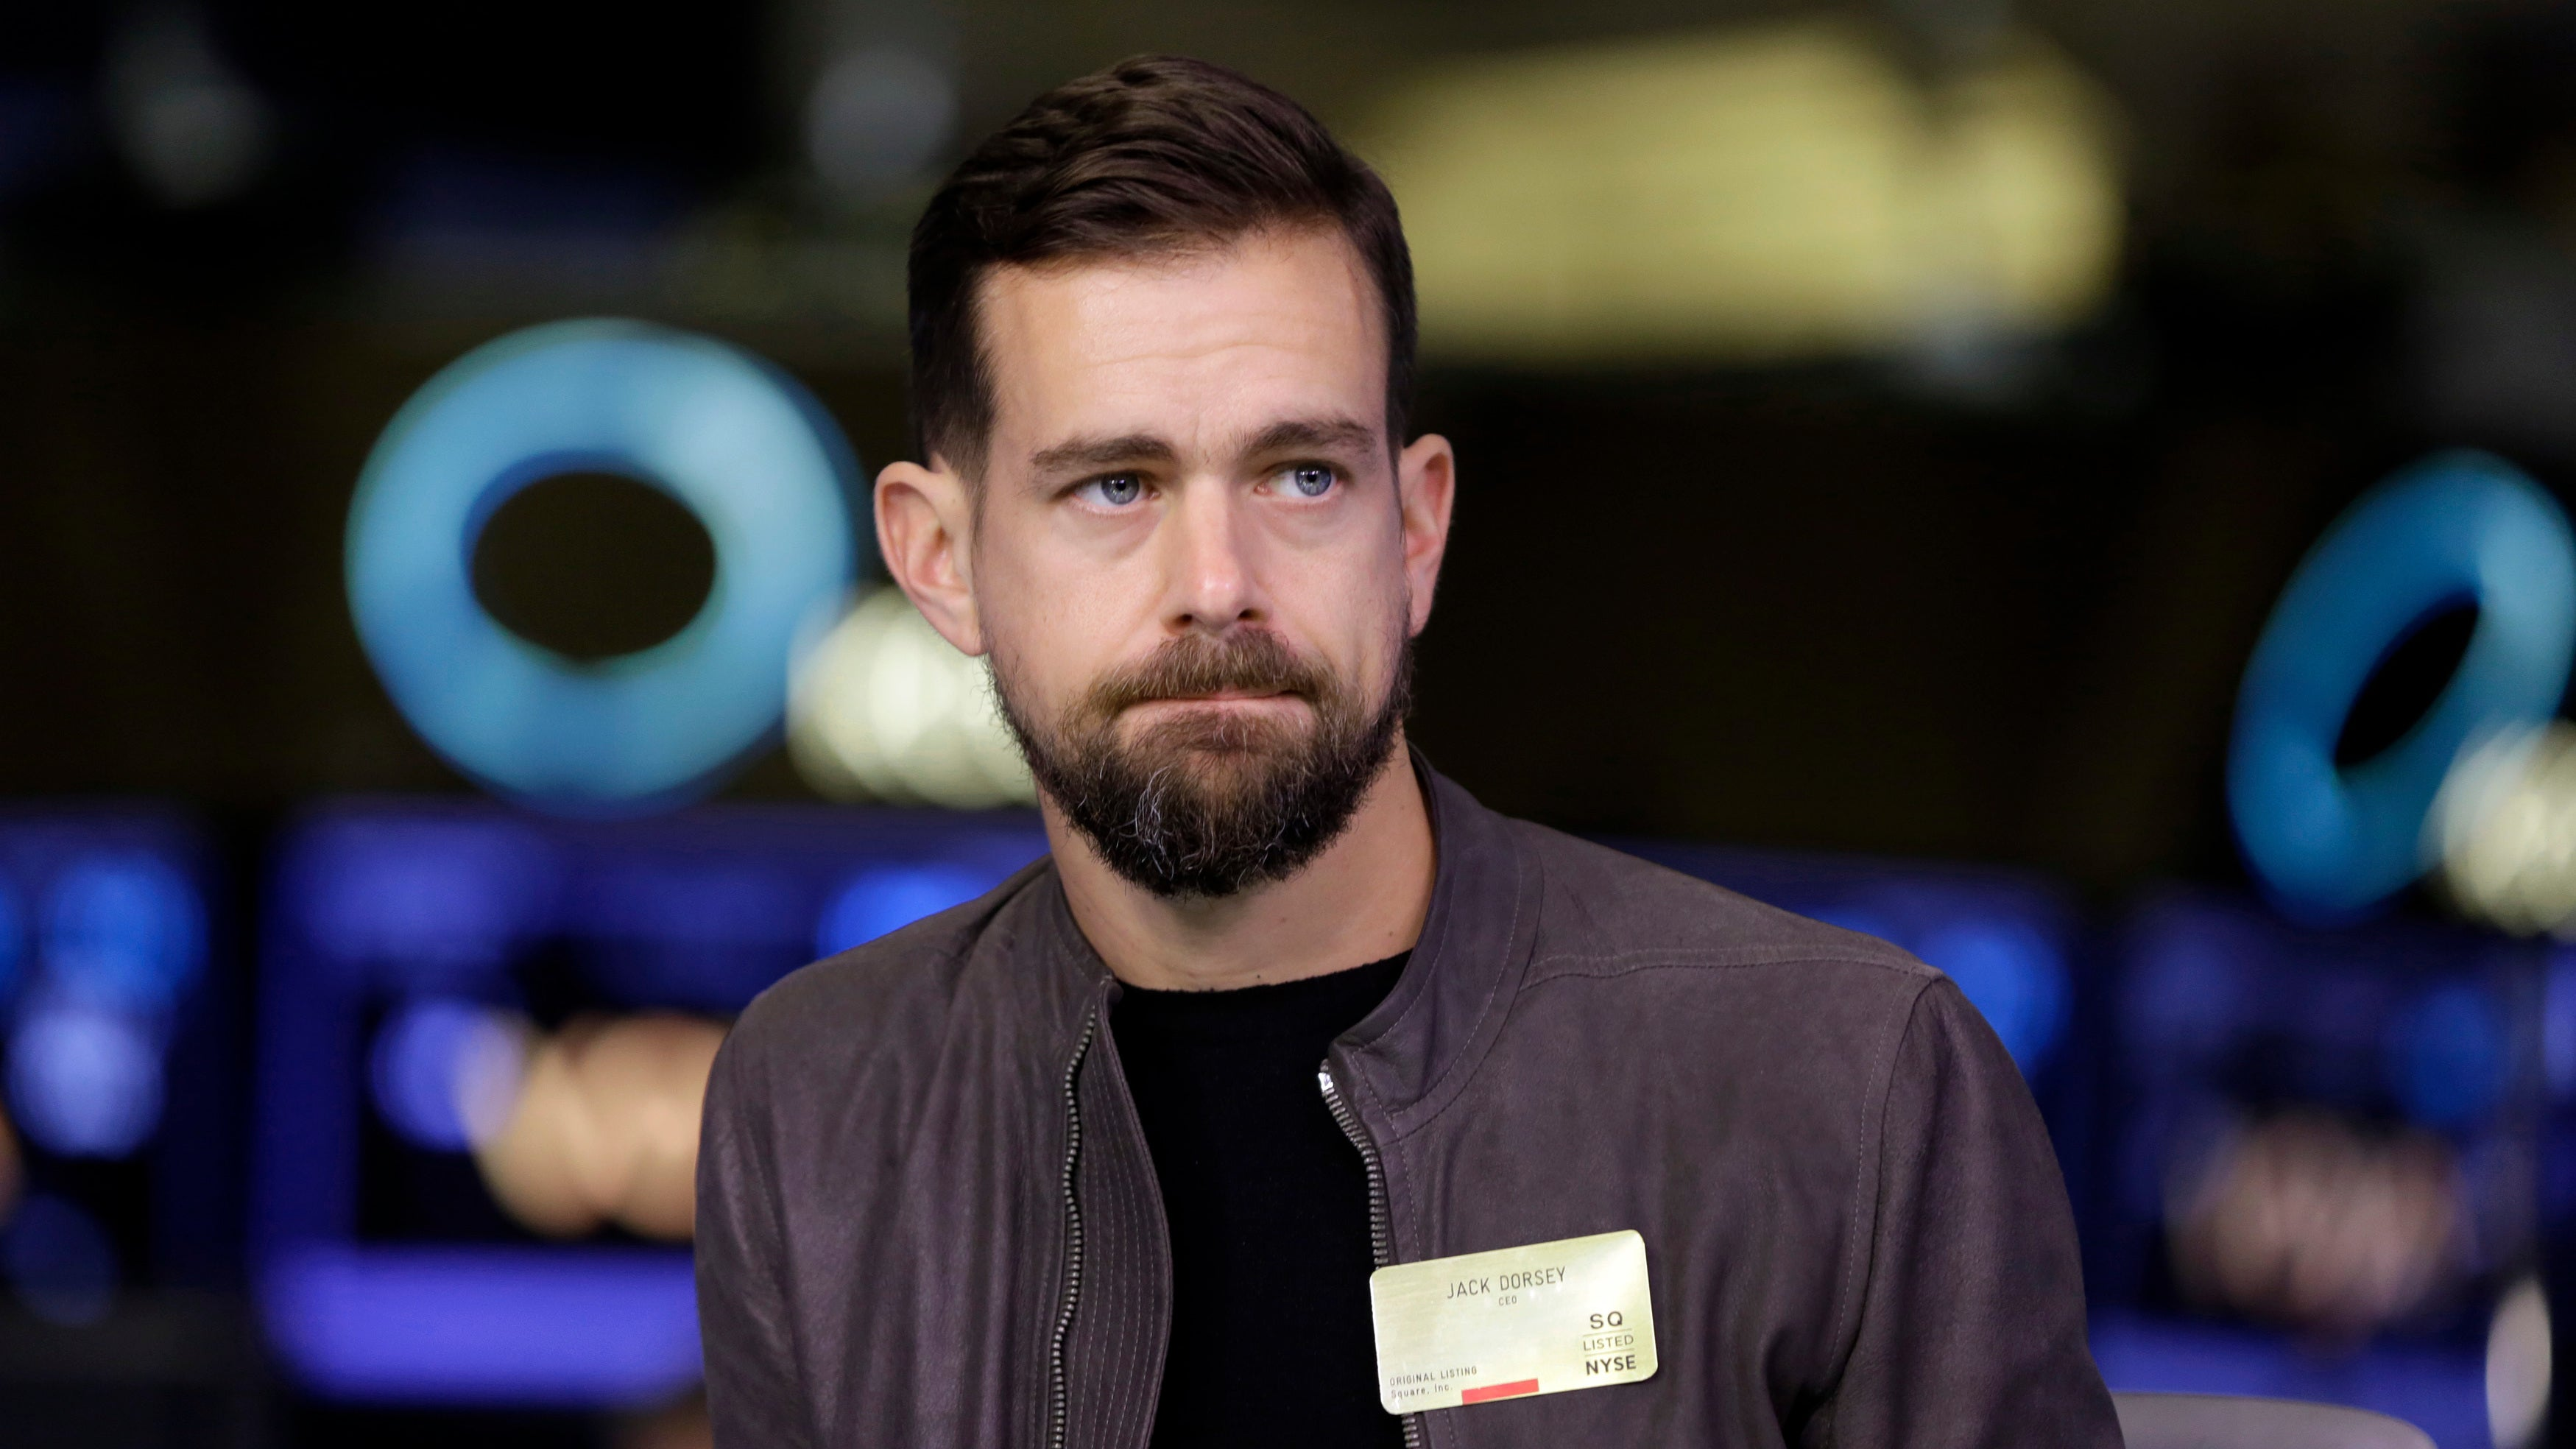 Twitter Responds To Claims Of 'Shadow Banning'